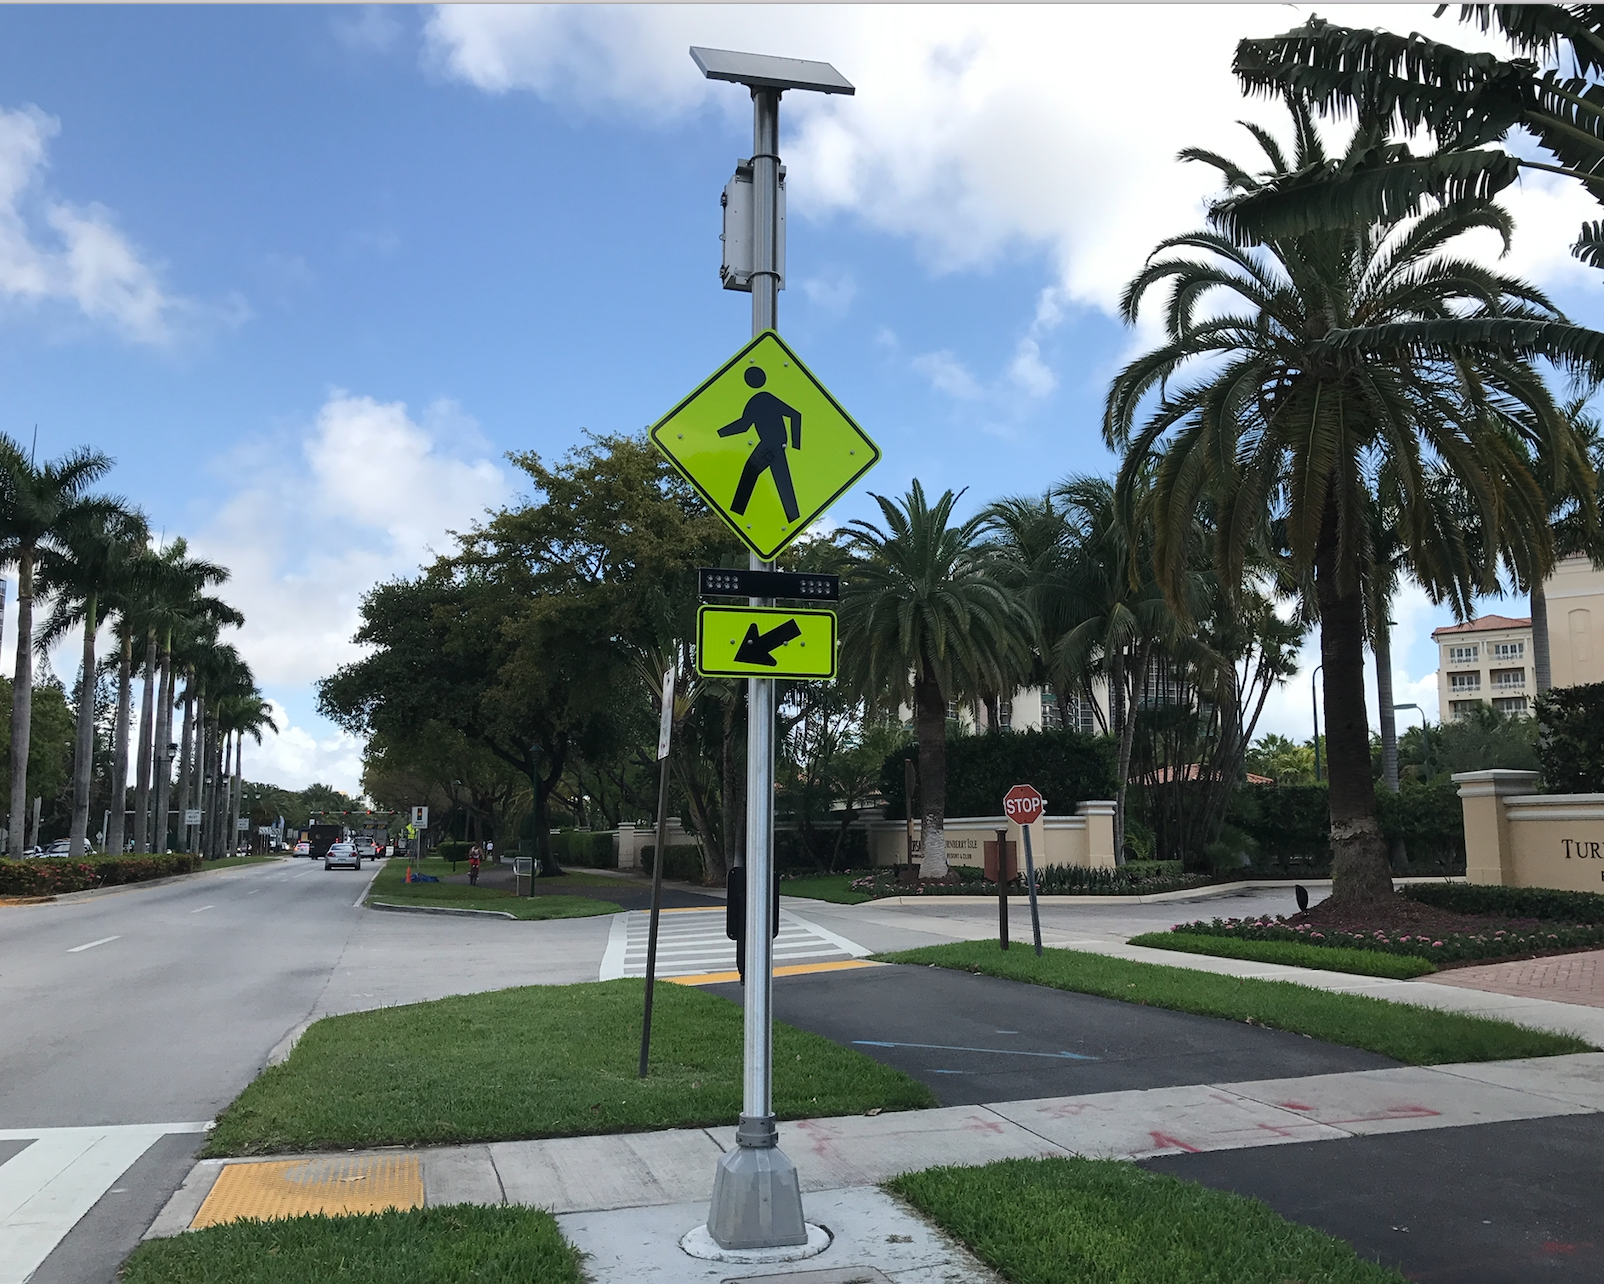 Solar Rectangular Rapid Flashing Beacon, Rectangular Rapid Flash Beacon, Solar-powered LED RRFB‎, Rectangular Rapid Flash Beacon RRFB, Solar Powered Rectangular Rapid Flashing Beacon.